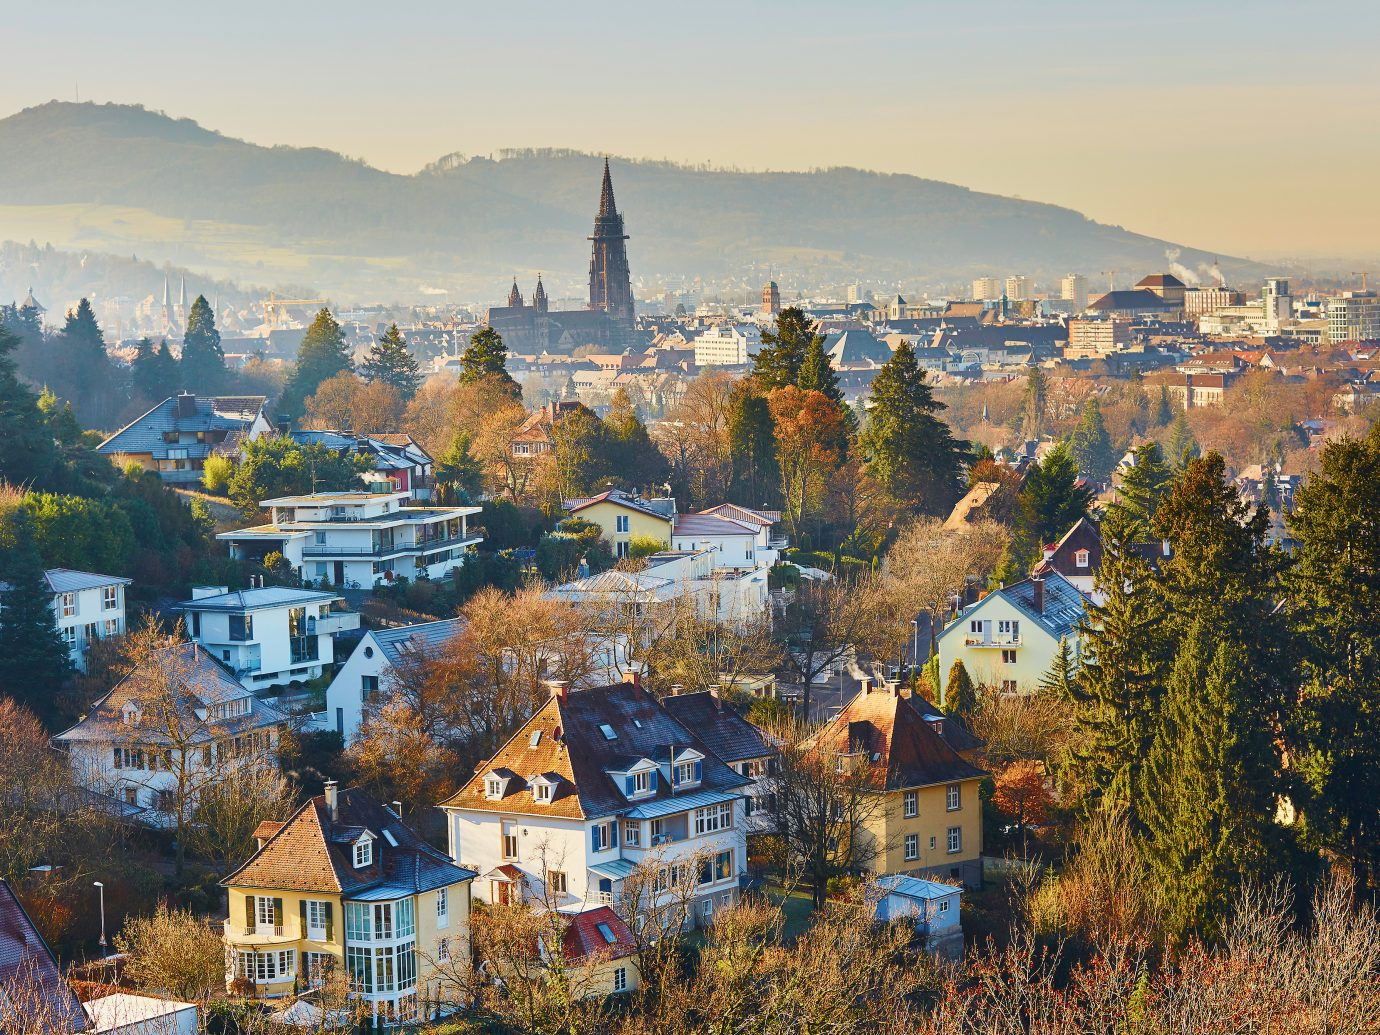 Beautiful panorama of Freiburg im Breisgau in Germany